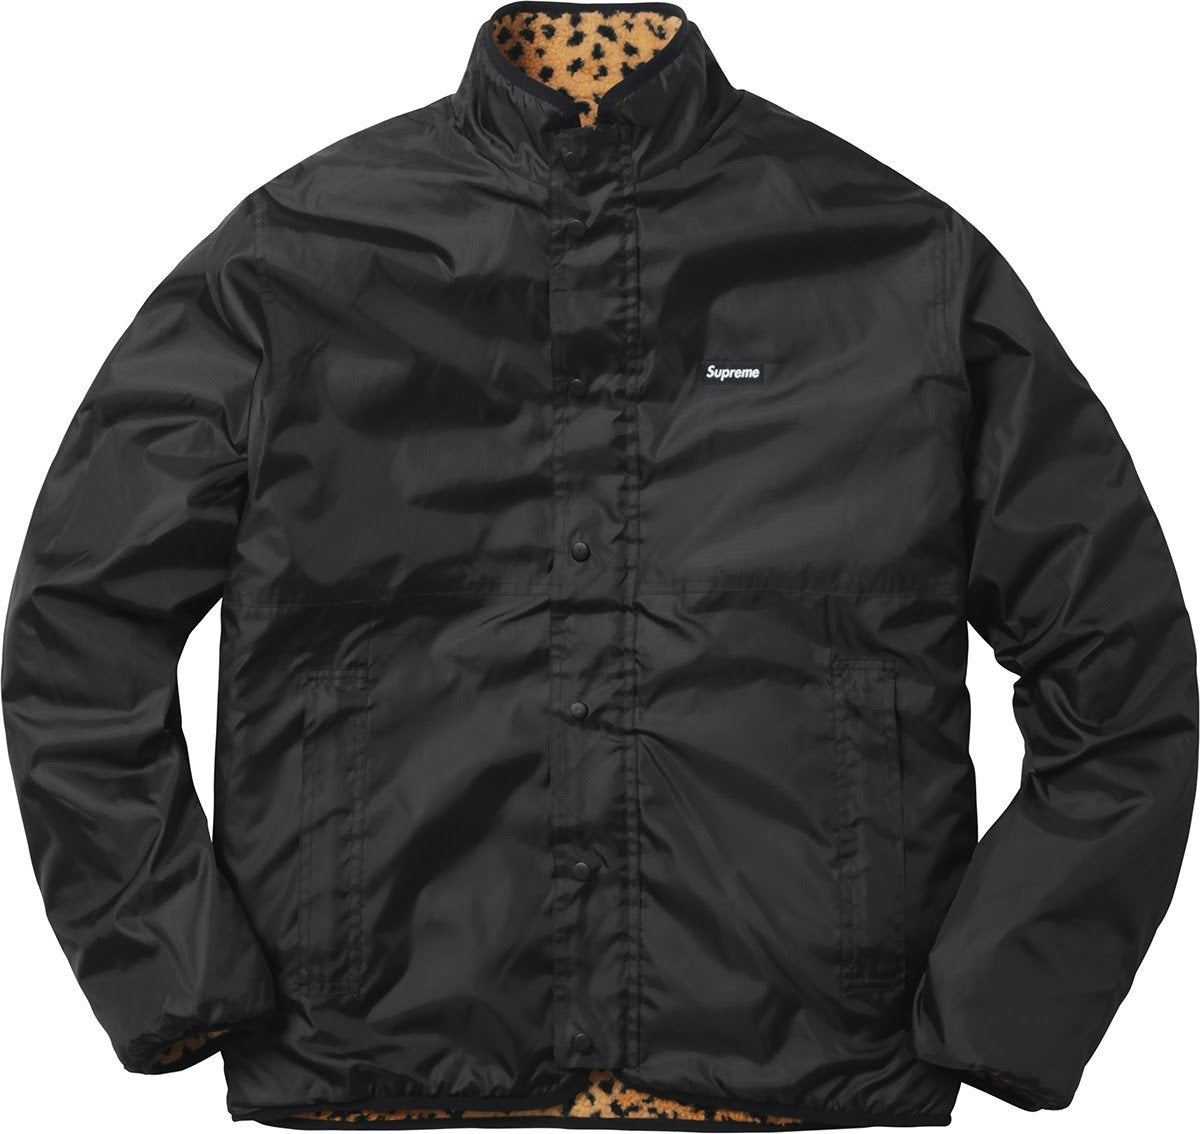 Image of Supreme leopard reversible jacket